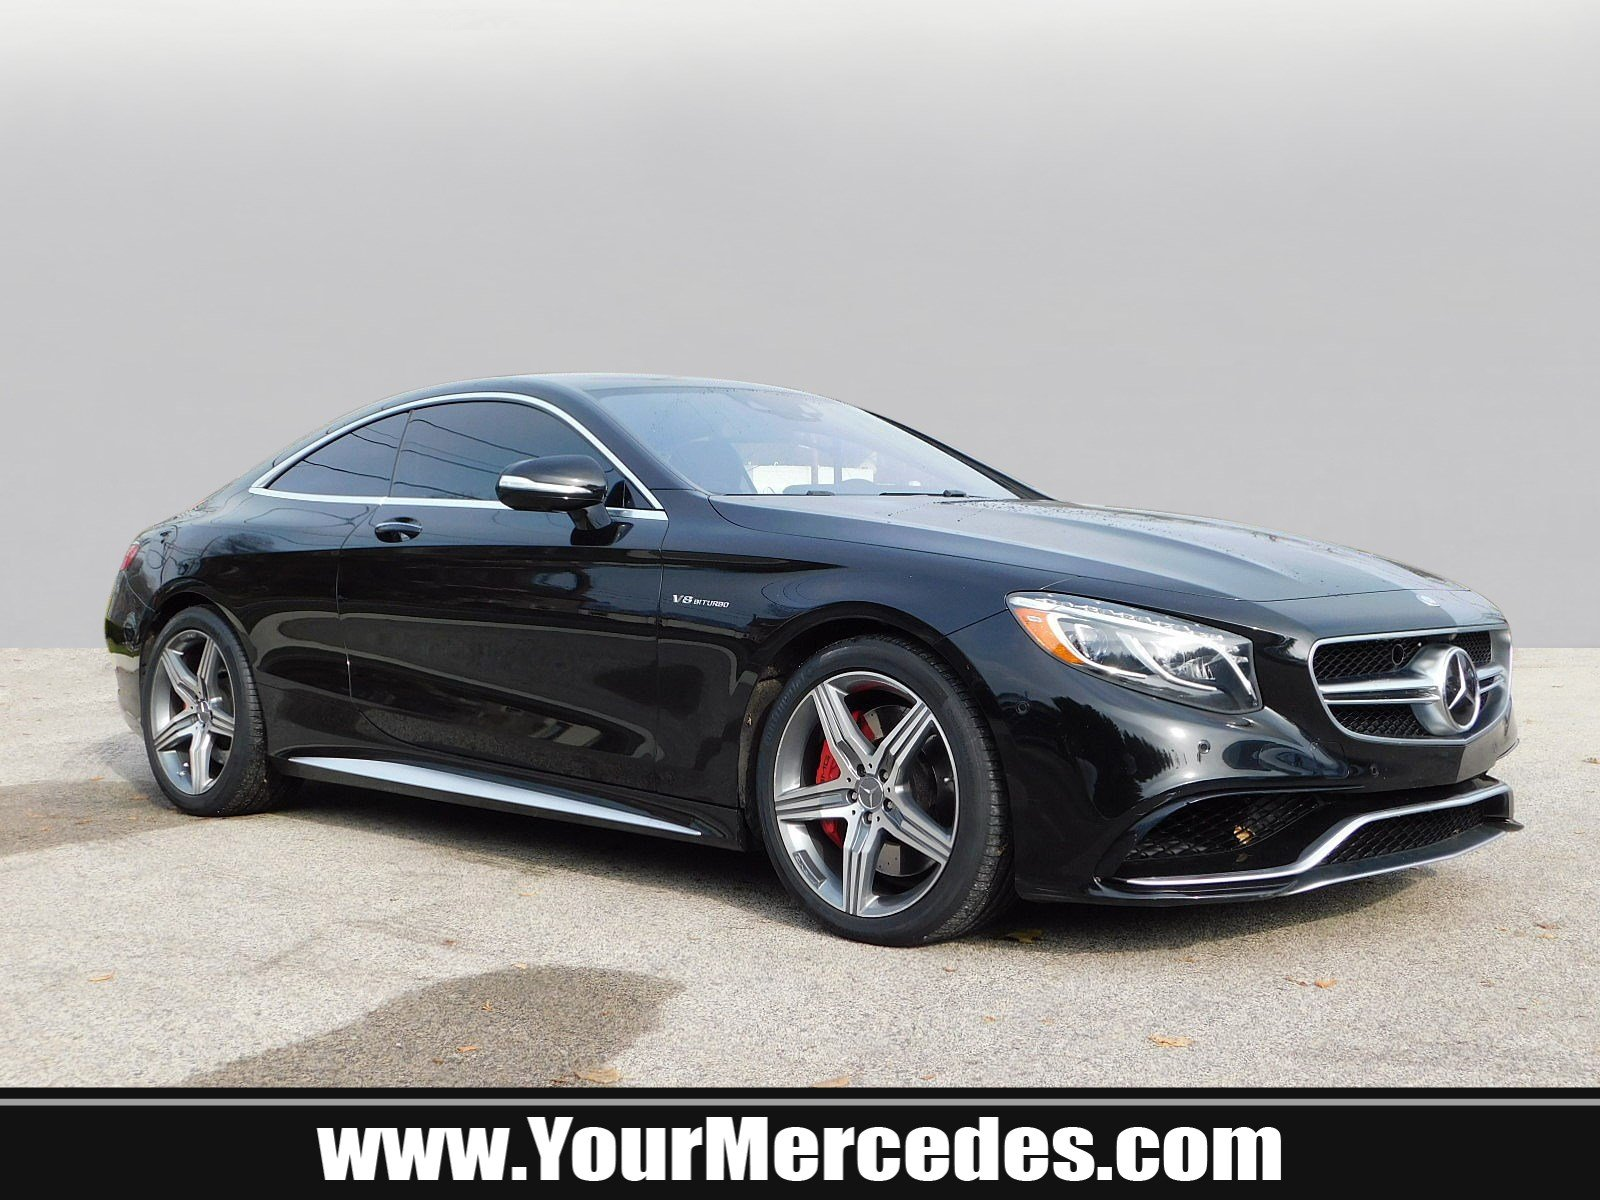 Certified Pre Owned 2015 Mercedes Benz S Class S 63 AMG 2D Coupe in